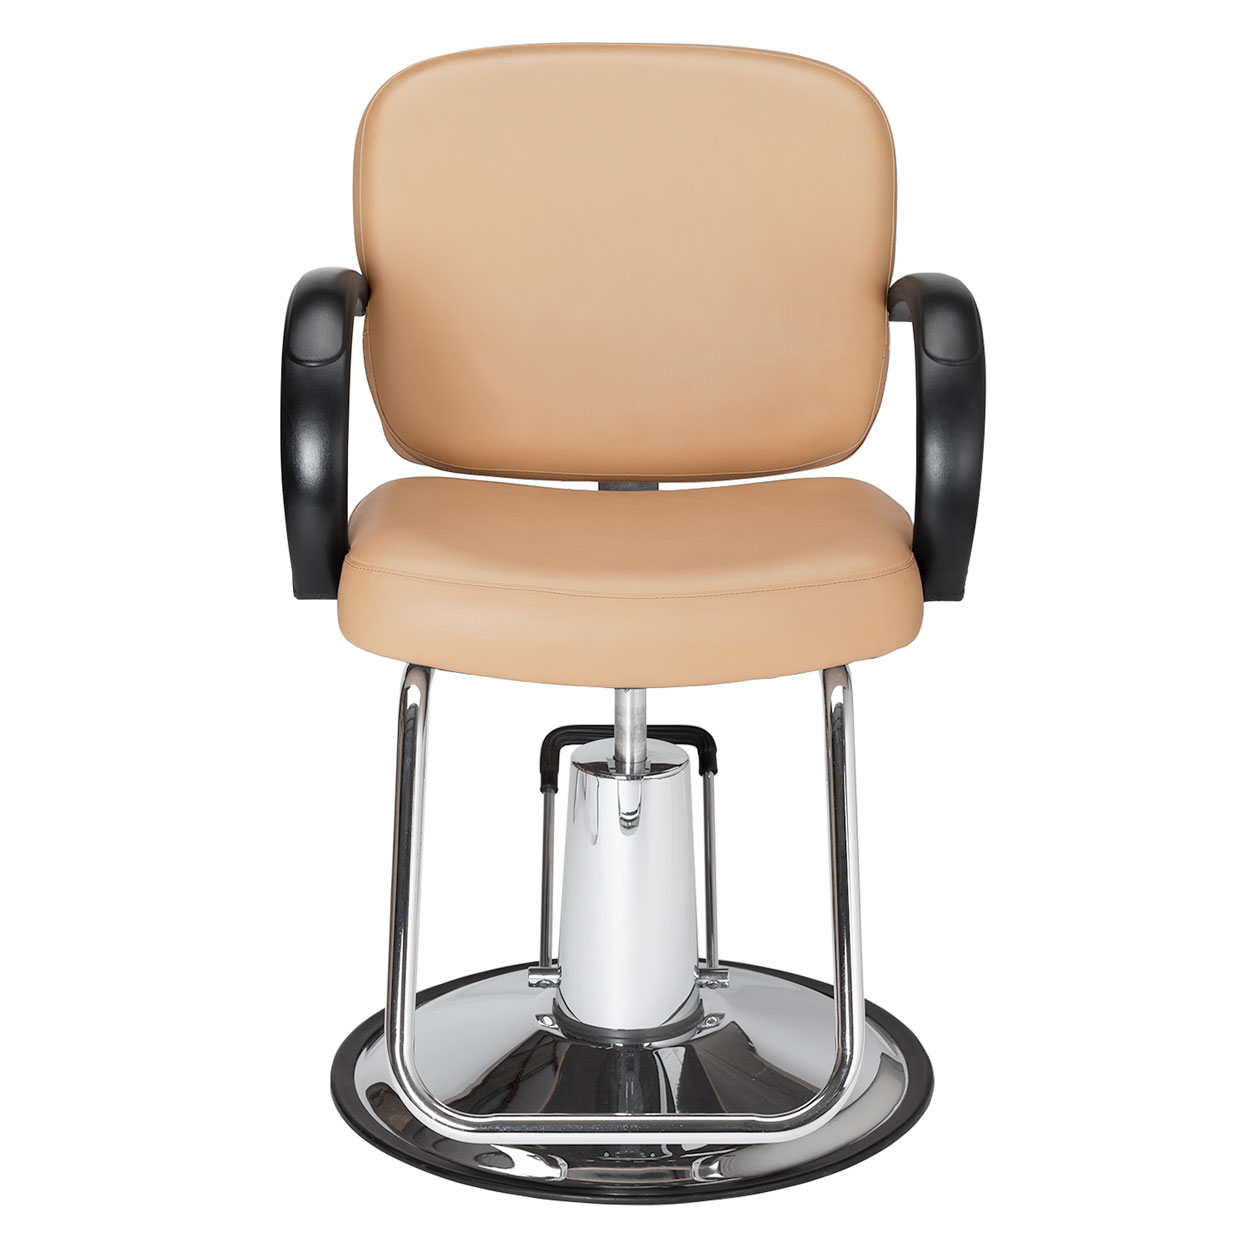 Pibbs 3606 Messina Styling Chair alternative product image 4